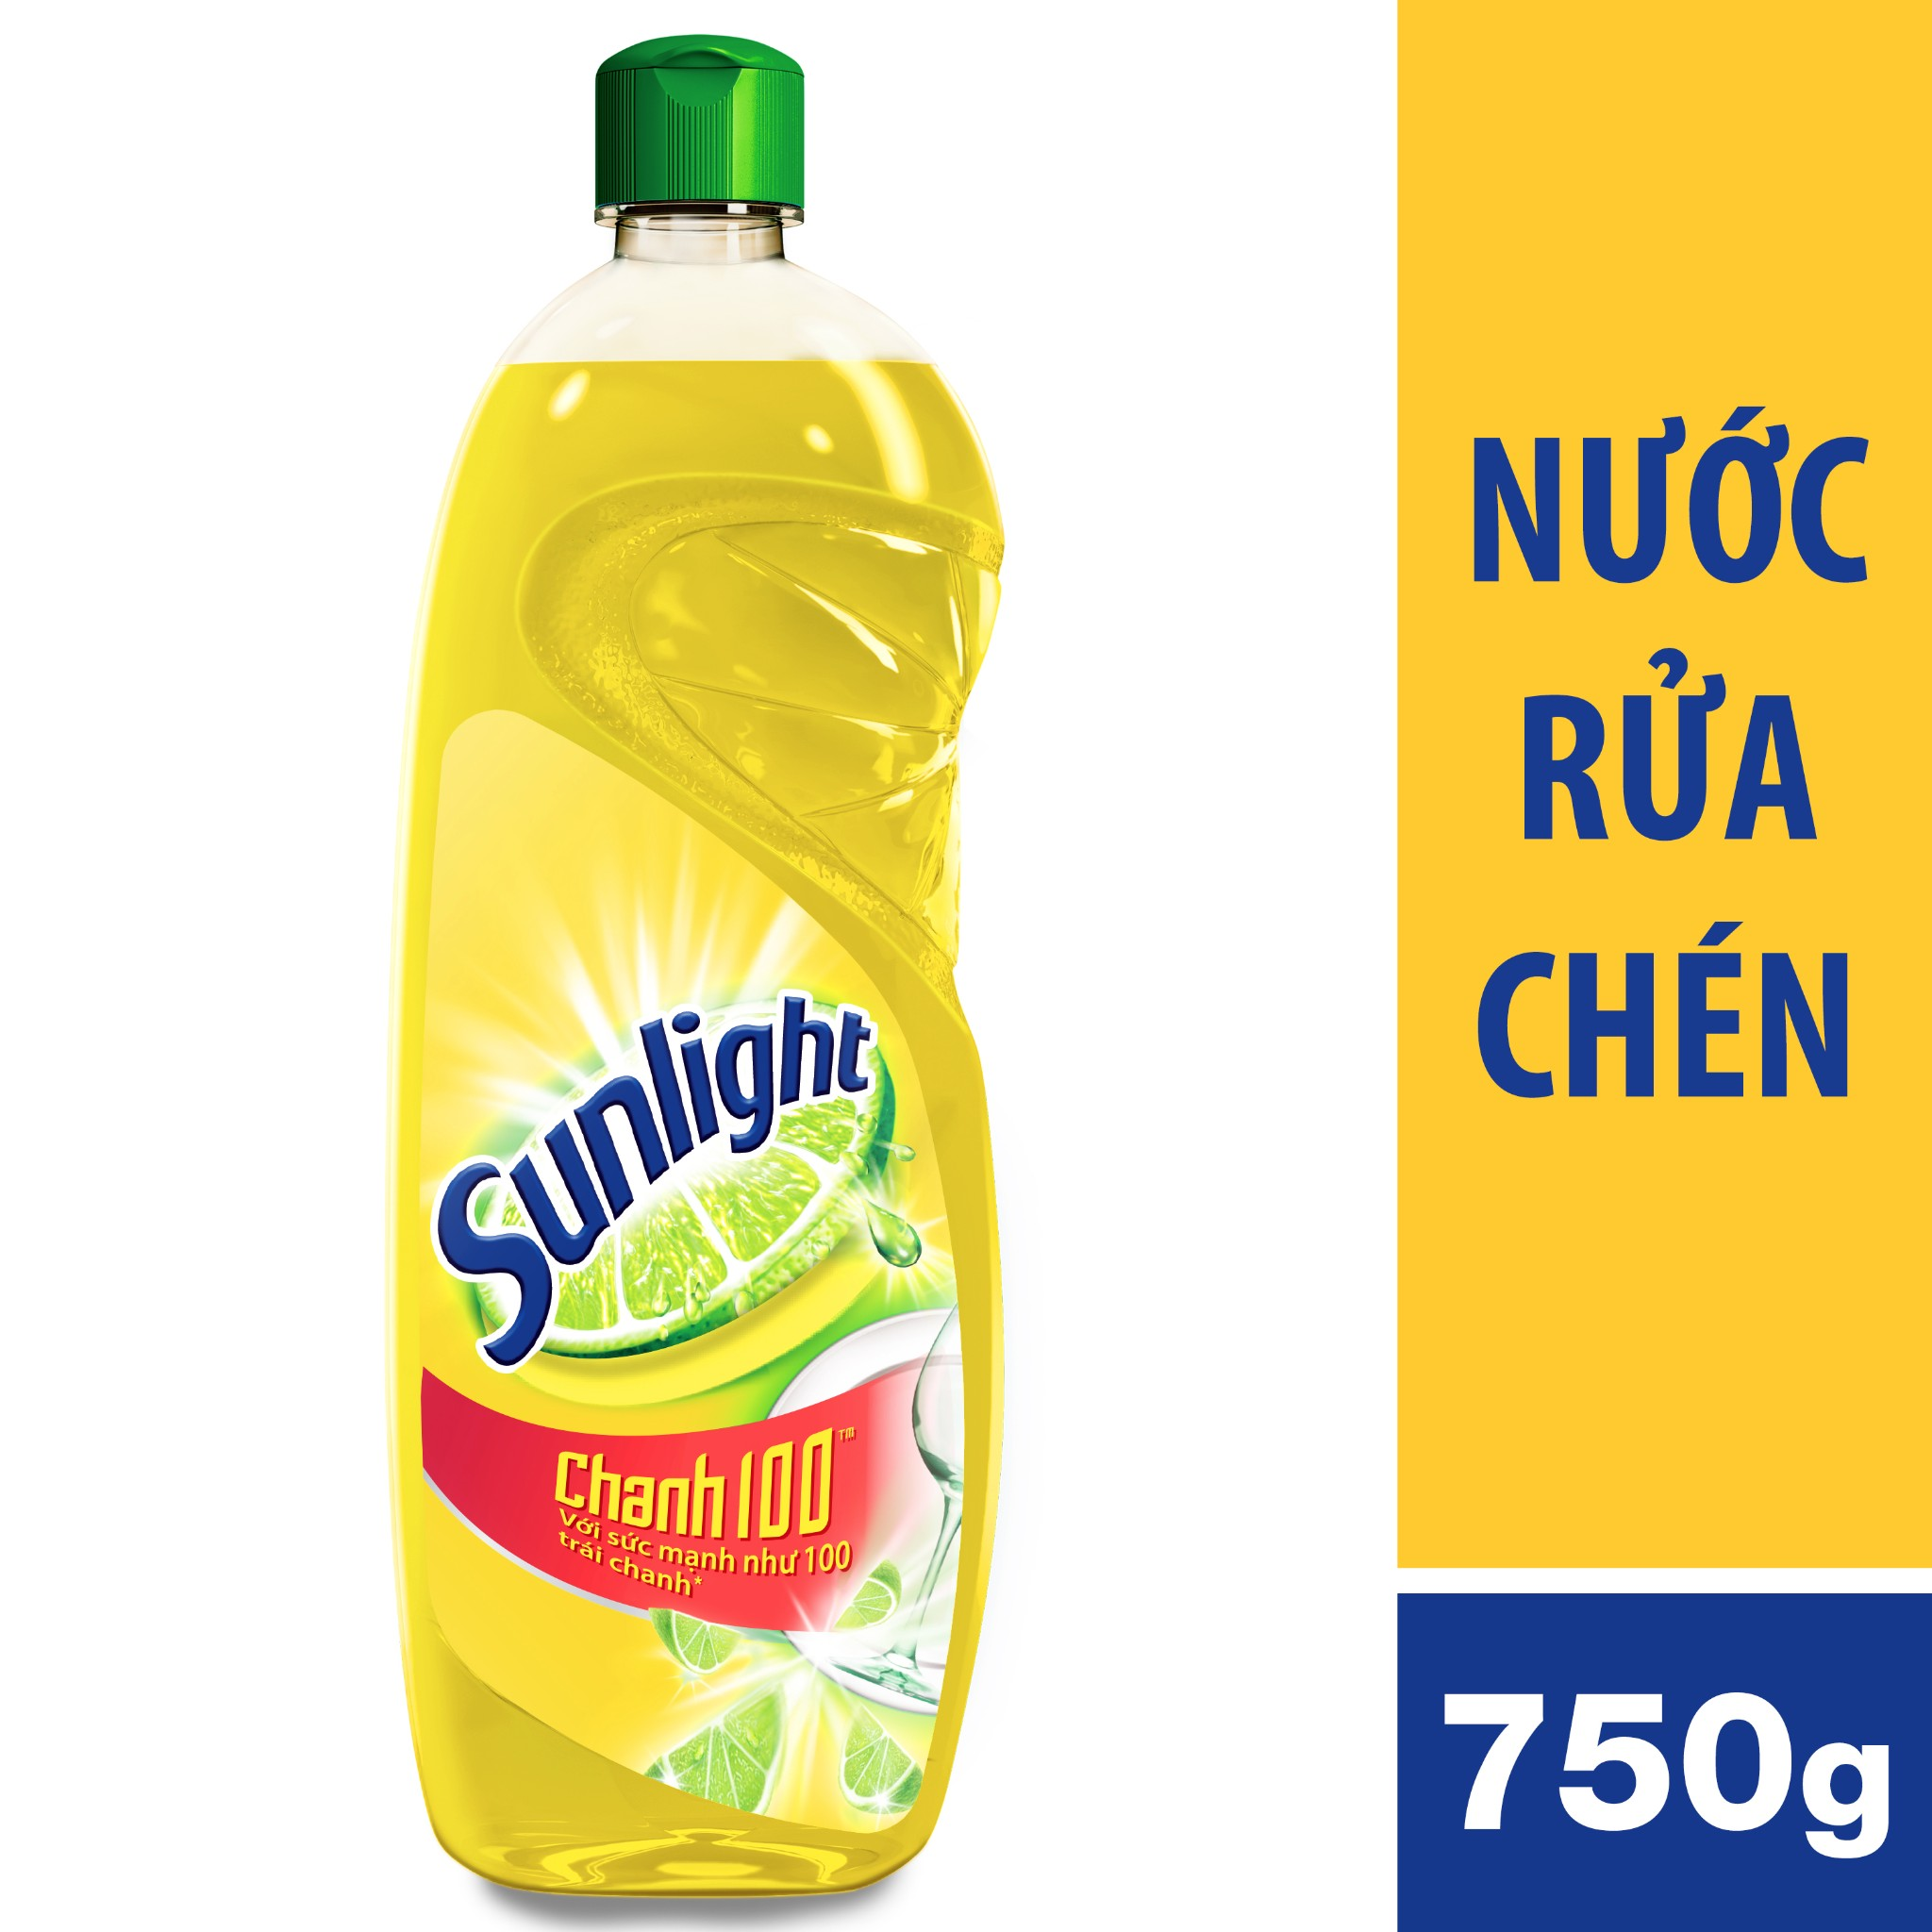 NƯỚC RỬA CHÉN SUNLIGHT CHANH 750G | Sunlight Dishwashing Liquid Bottle 750g